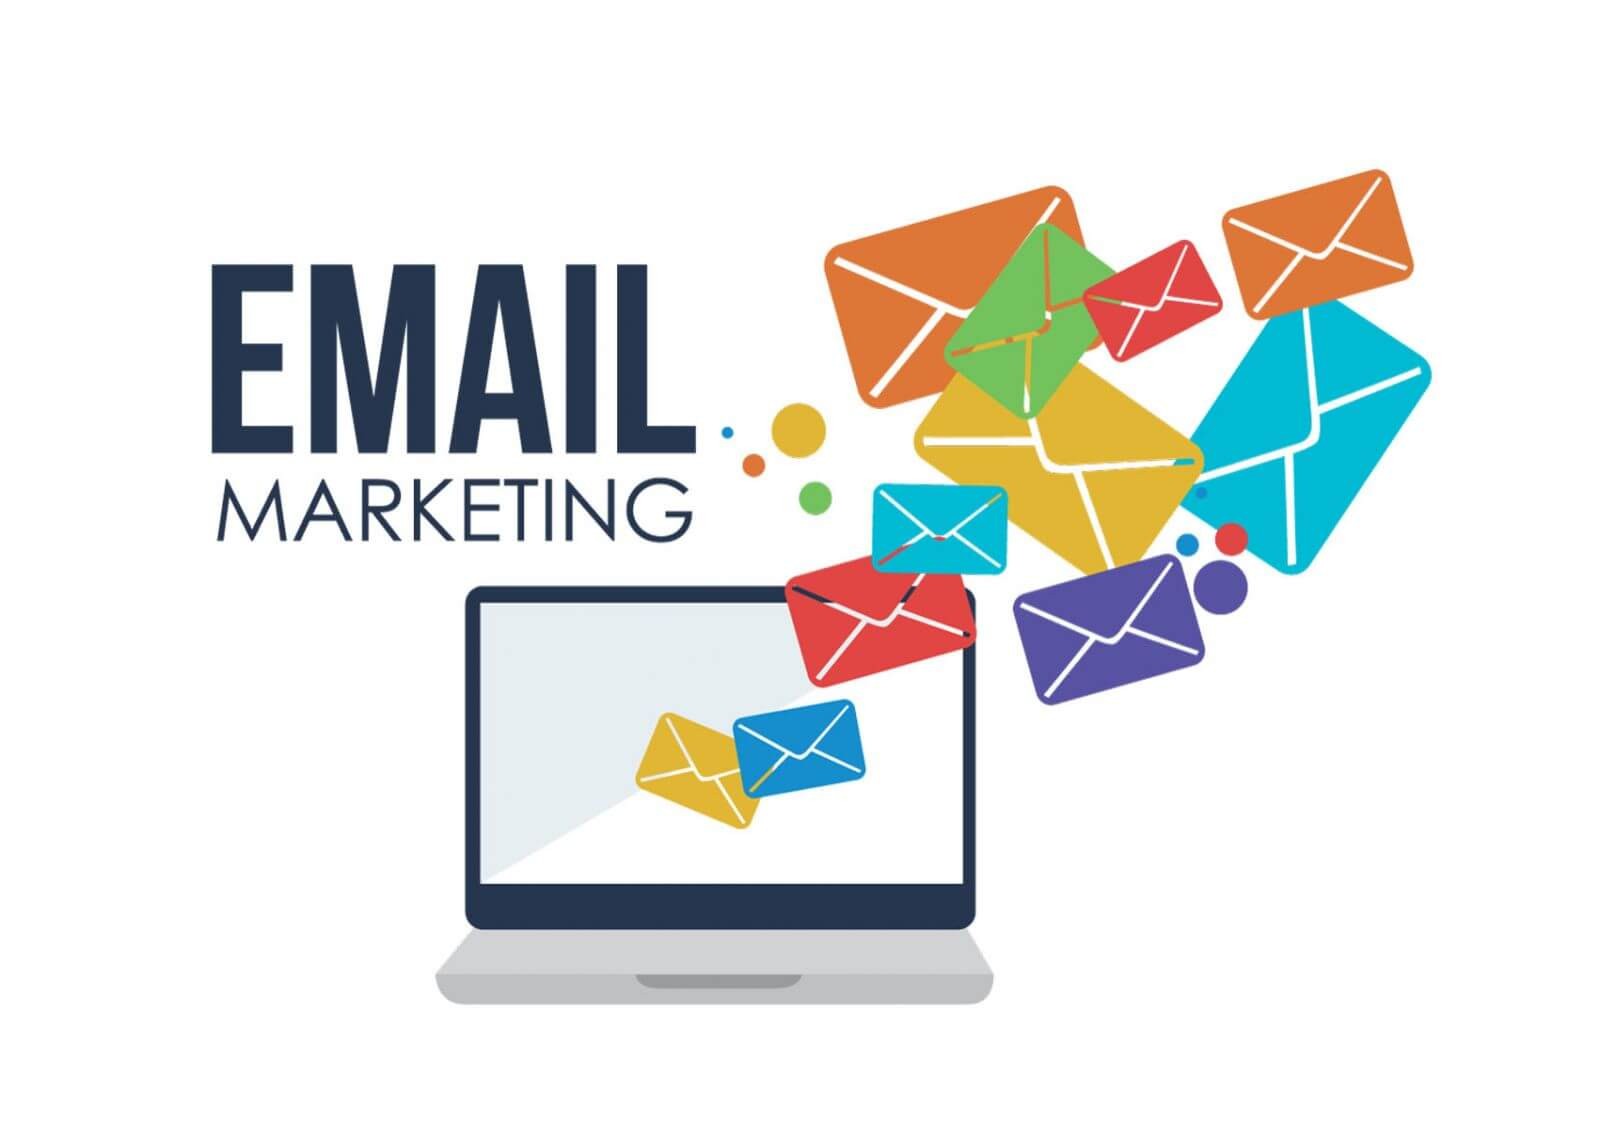 email marketing là gì